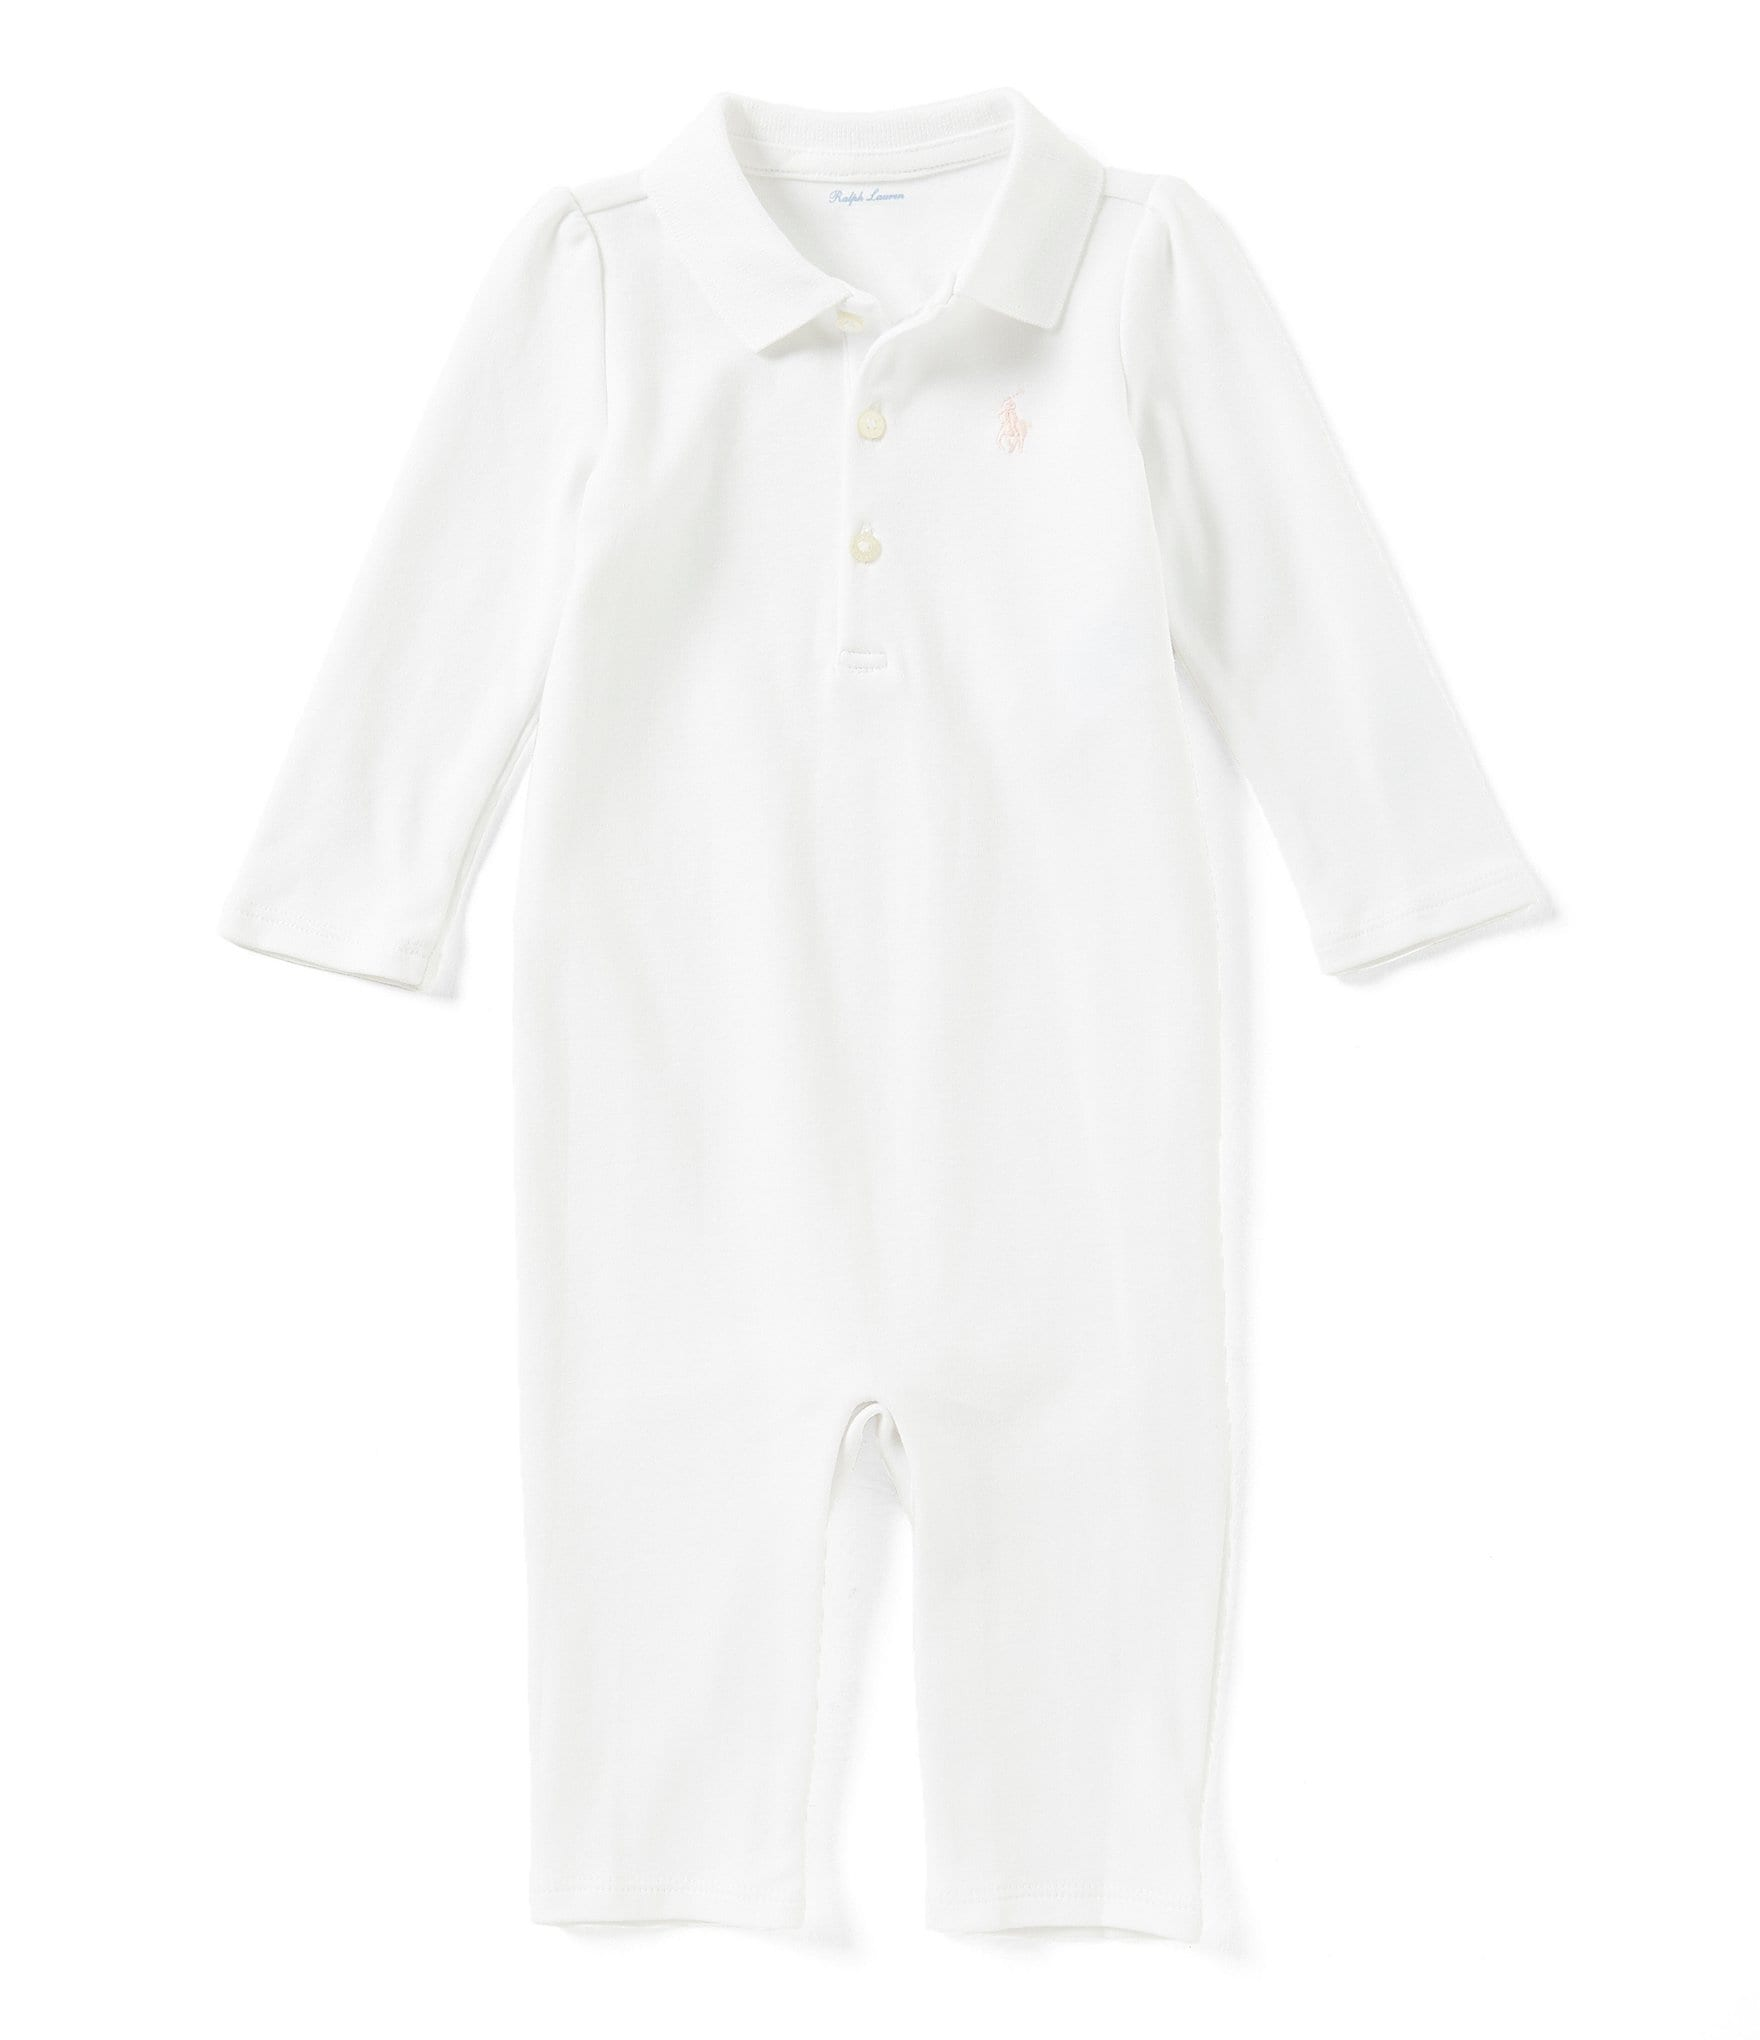 ec3389233 ralph lauren baby girl 18 months polo ralph lauren t-shirts for boys